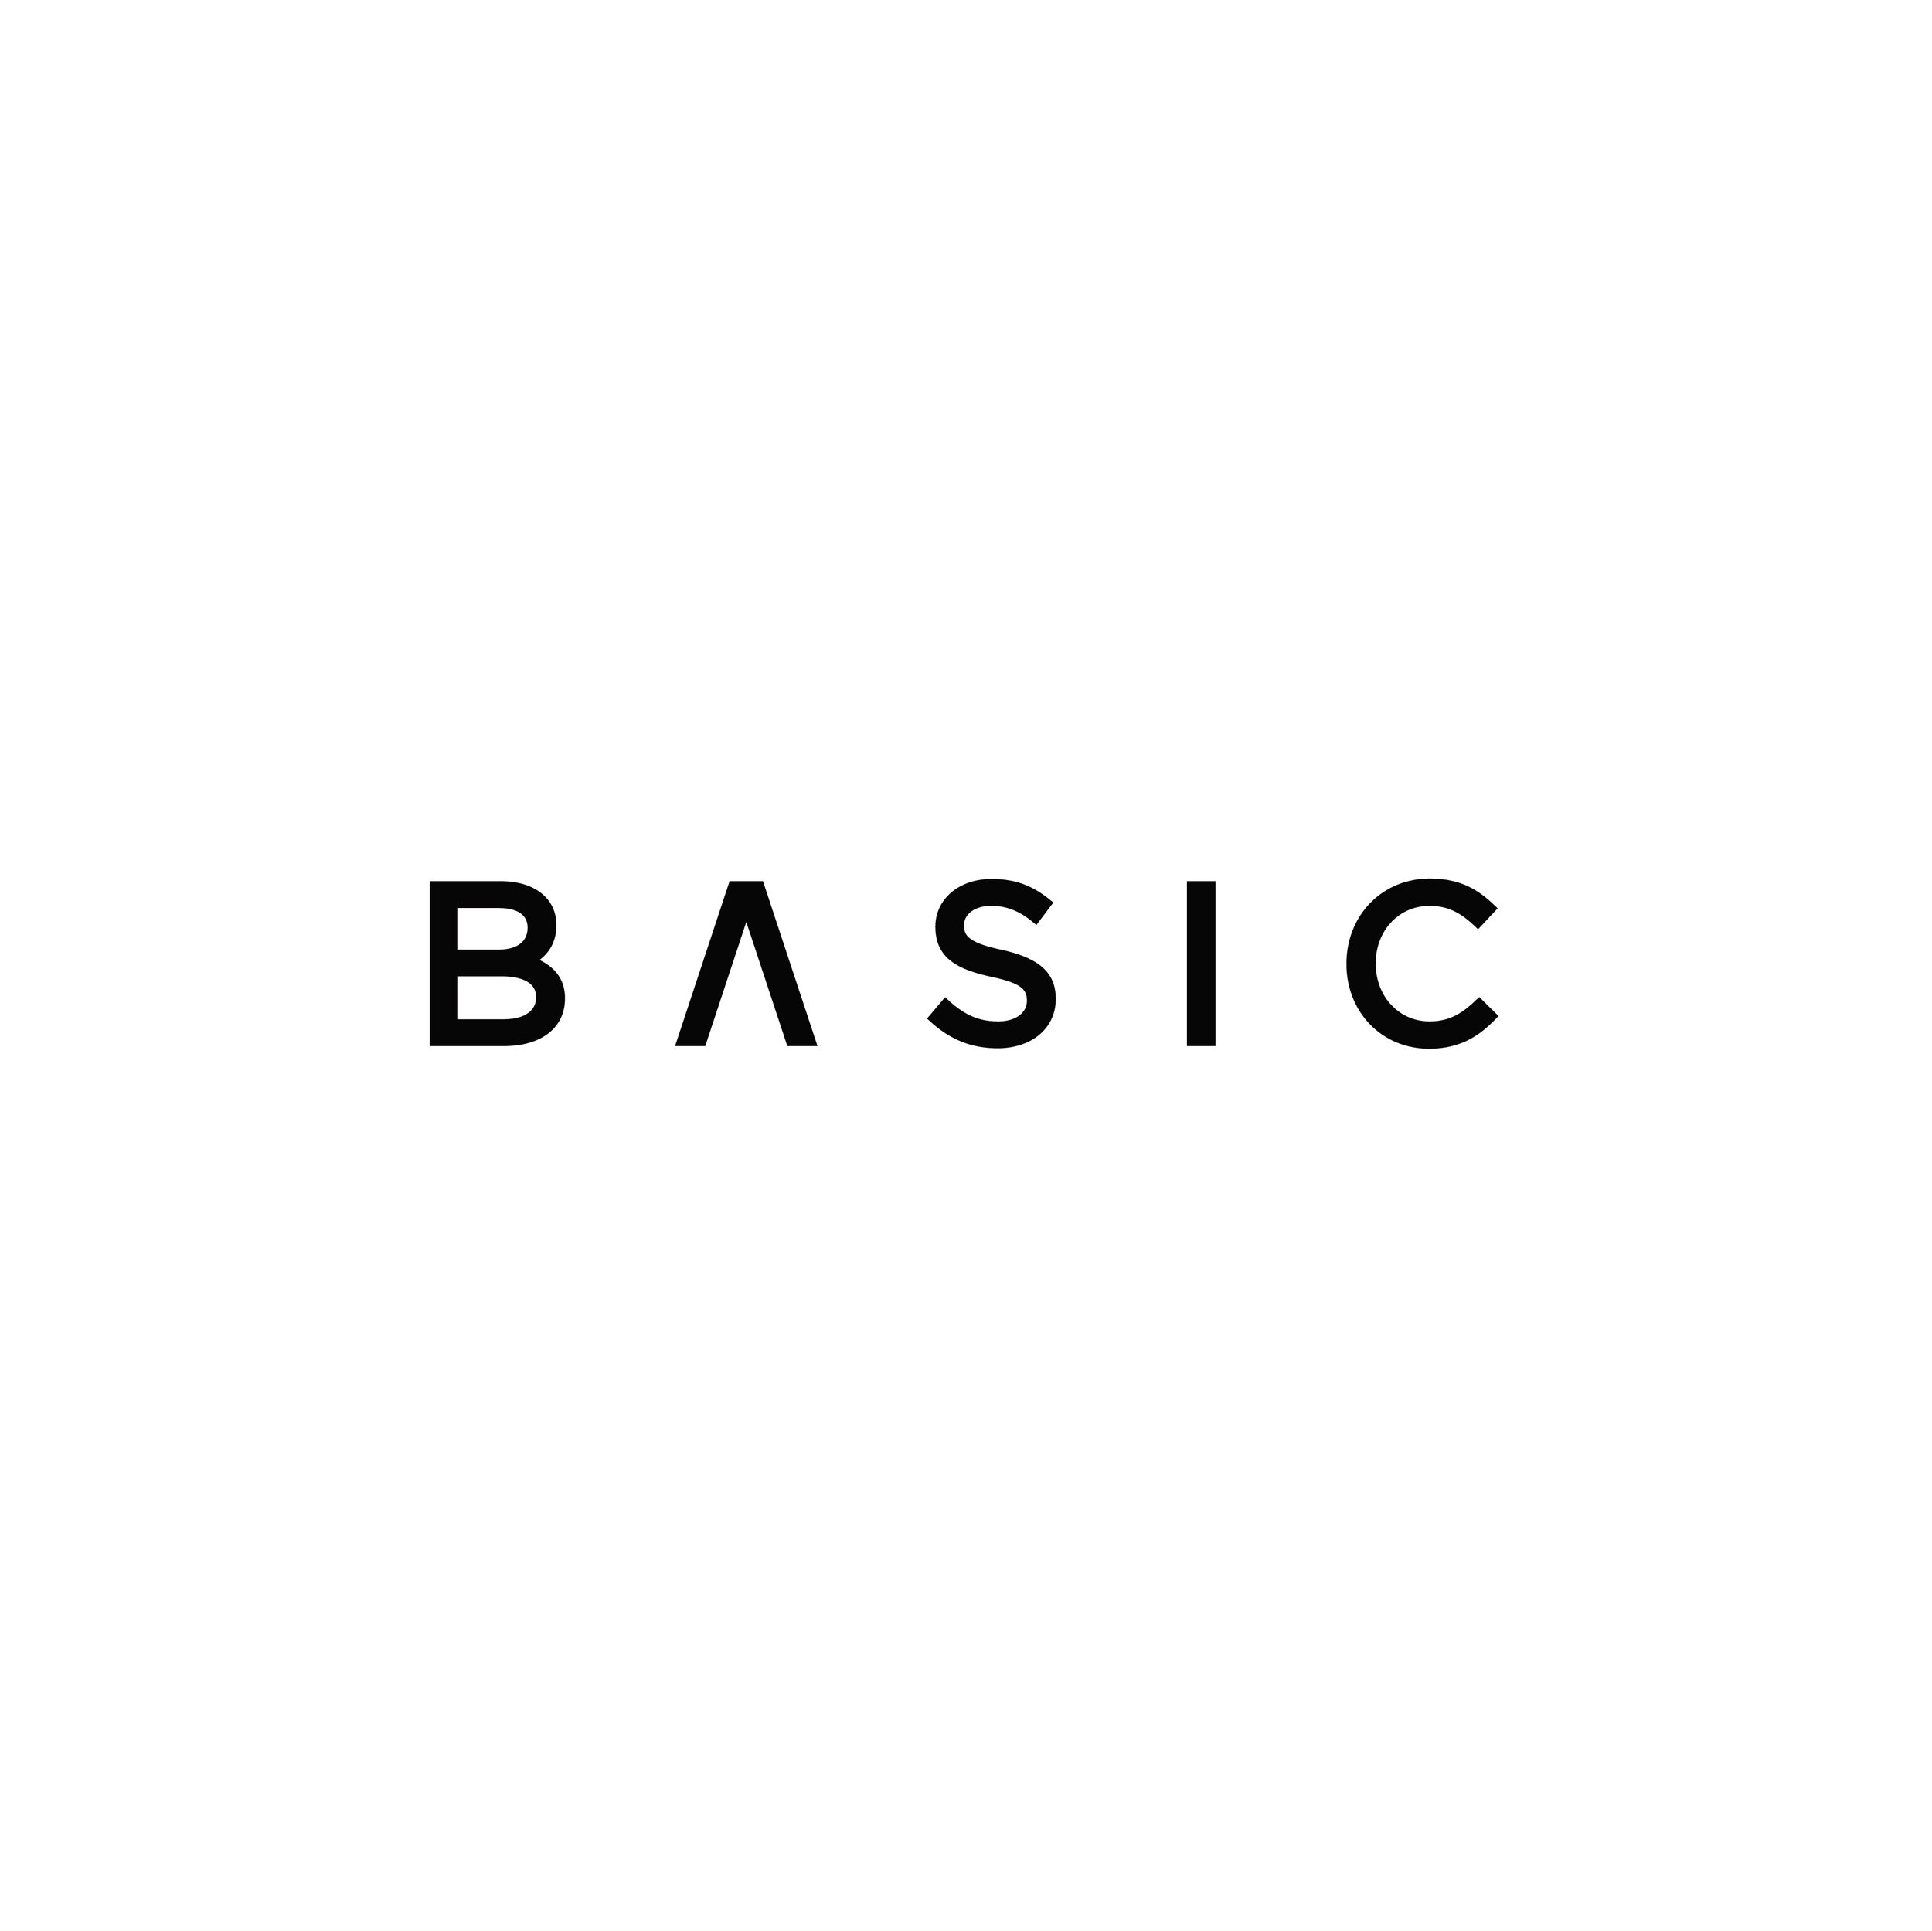 We're an experience design agency that builds digital products and services to drive commerce and connect with culture.   Website:  www.basicagency.com